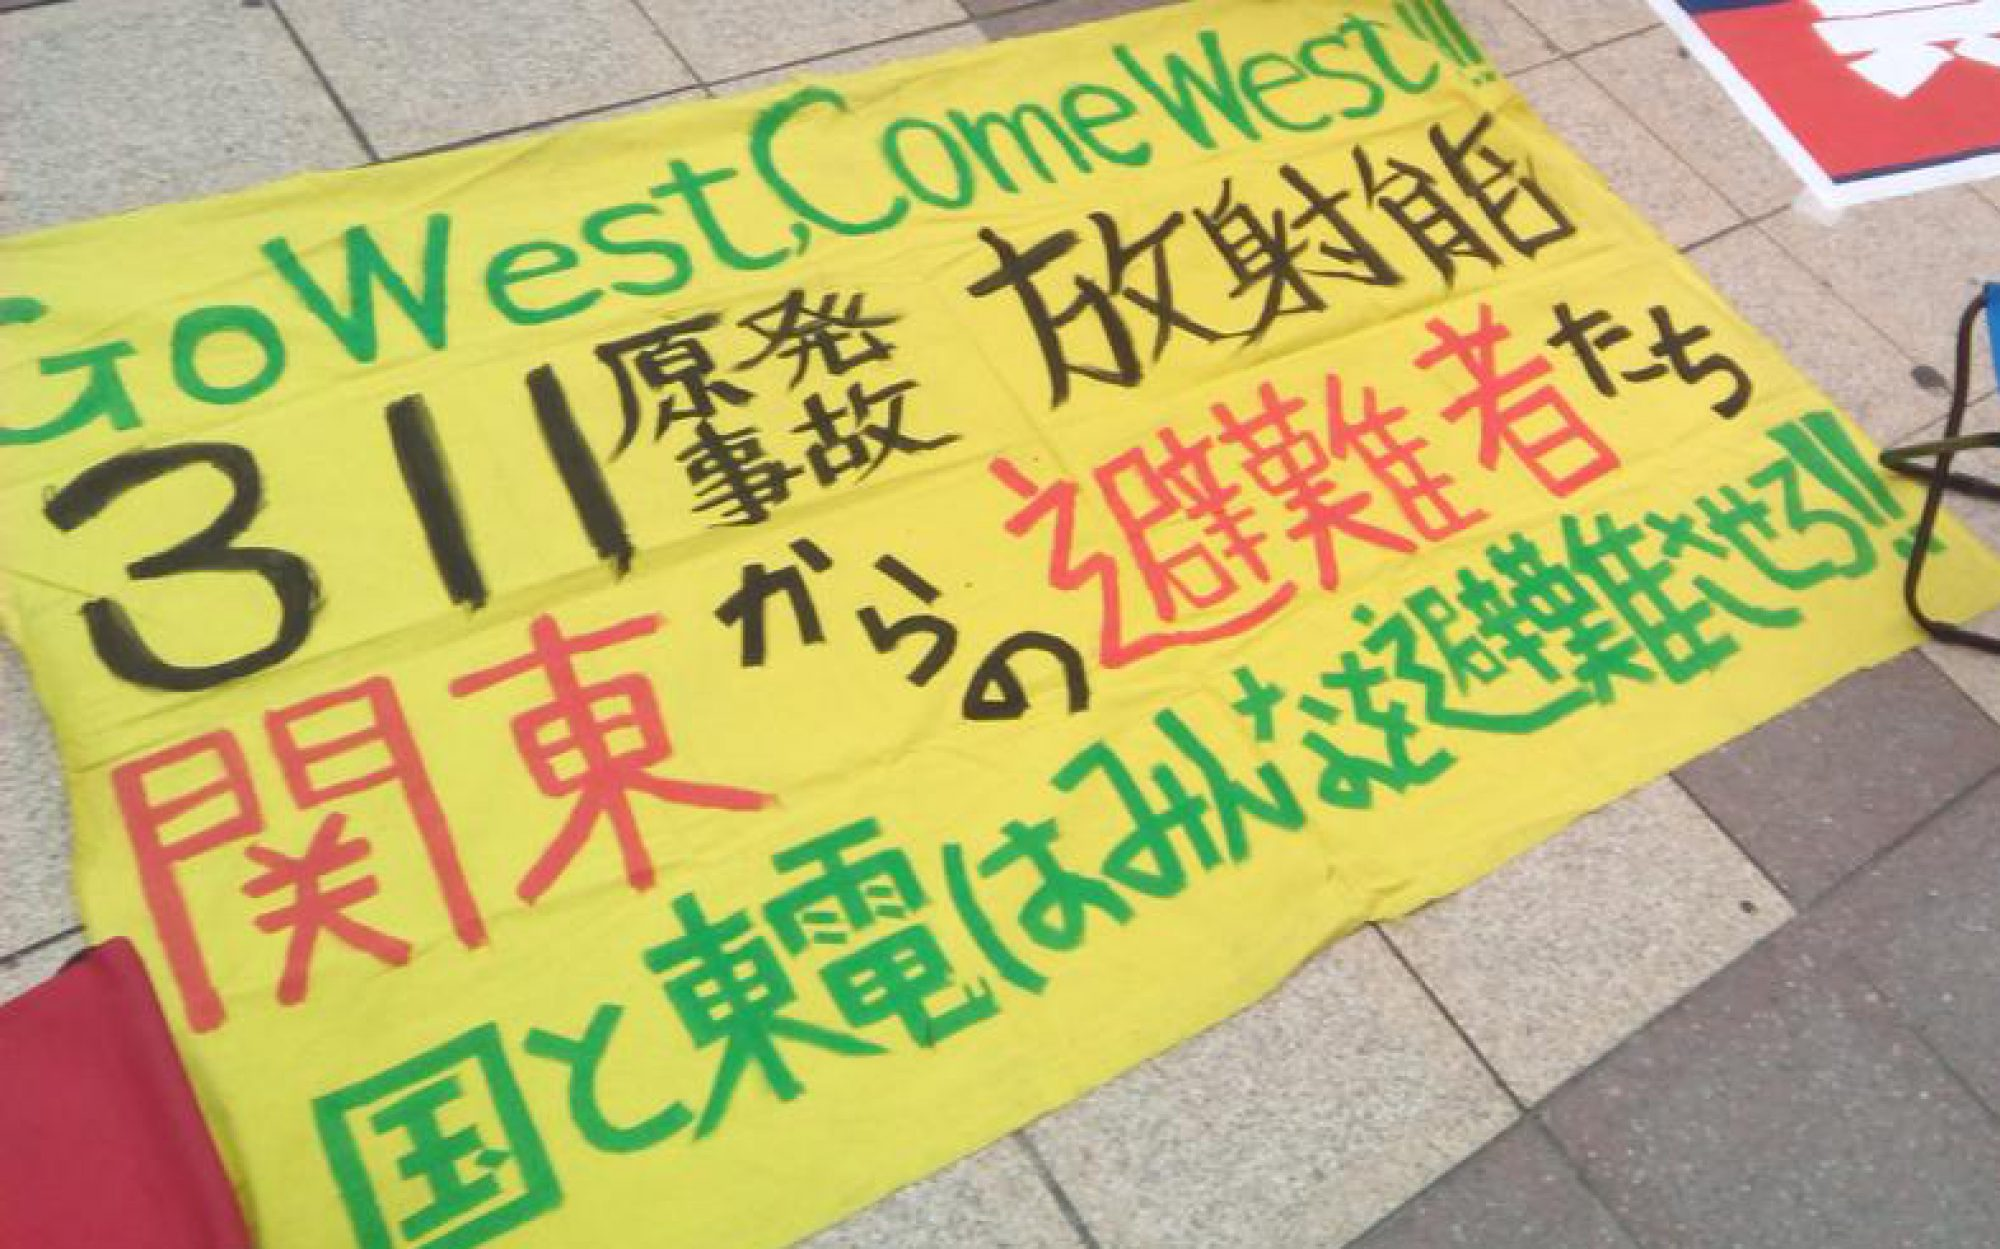 Go West, Come West 定例街宣